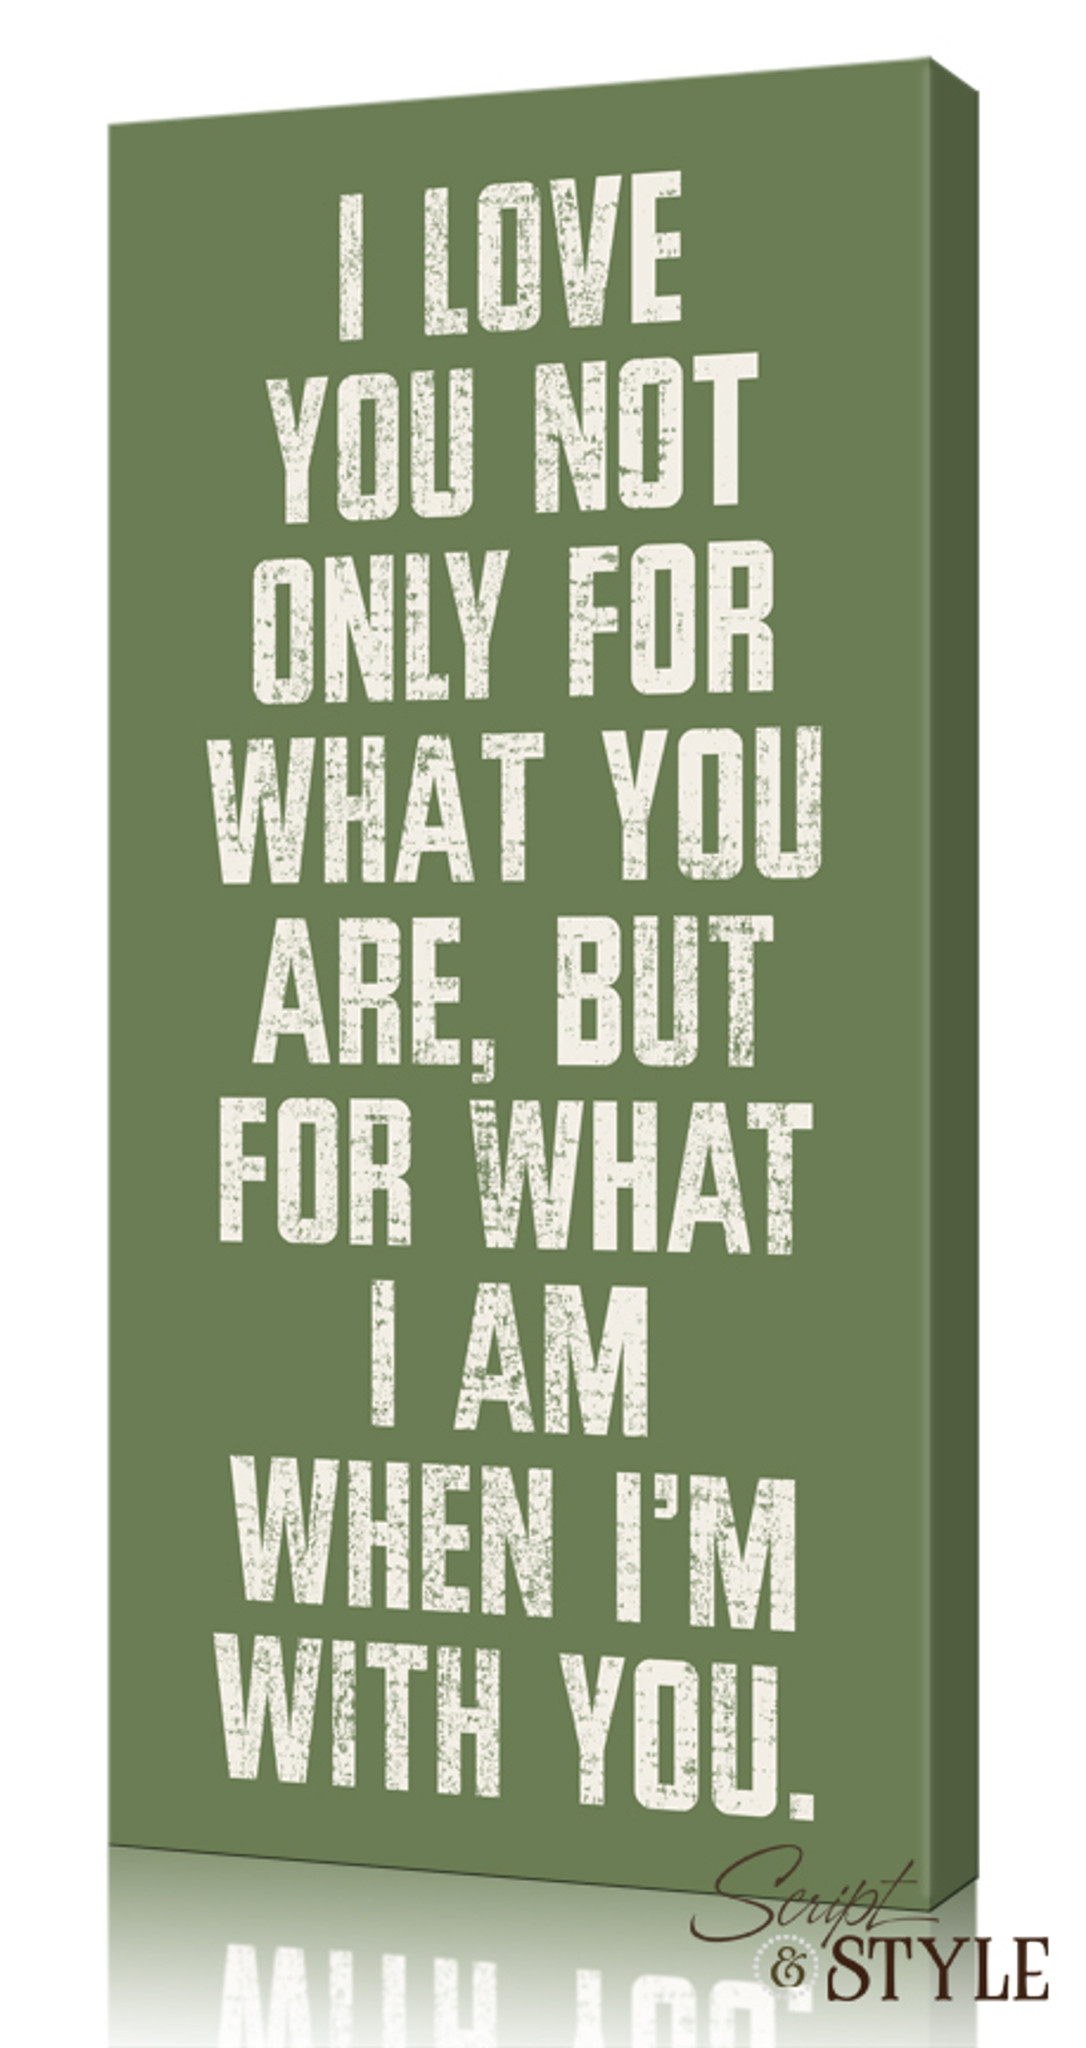 8197a5955e1c6 Quote on Canvas: I Love You For What You Are